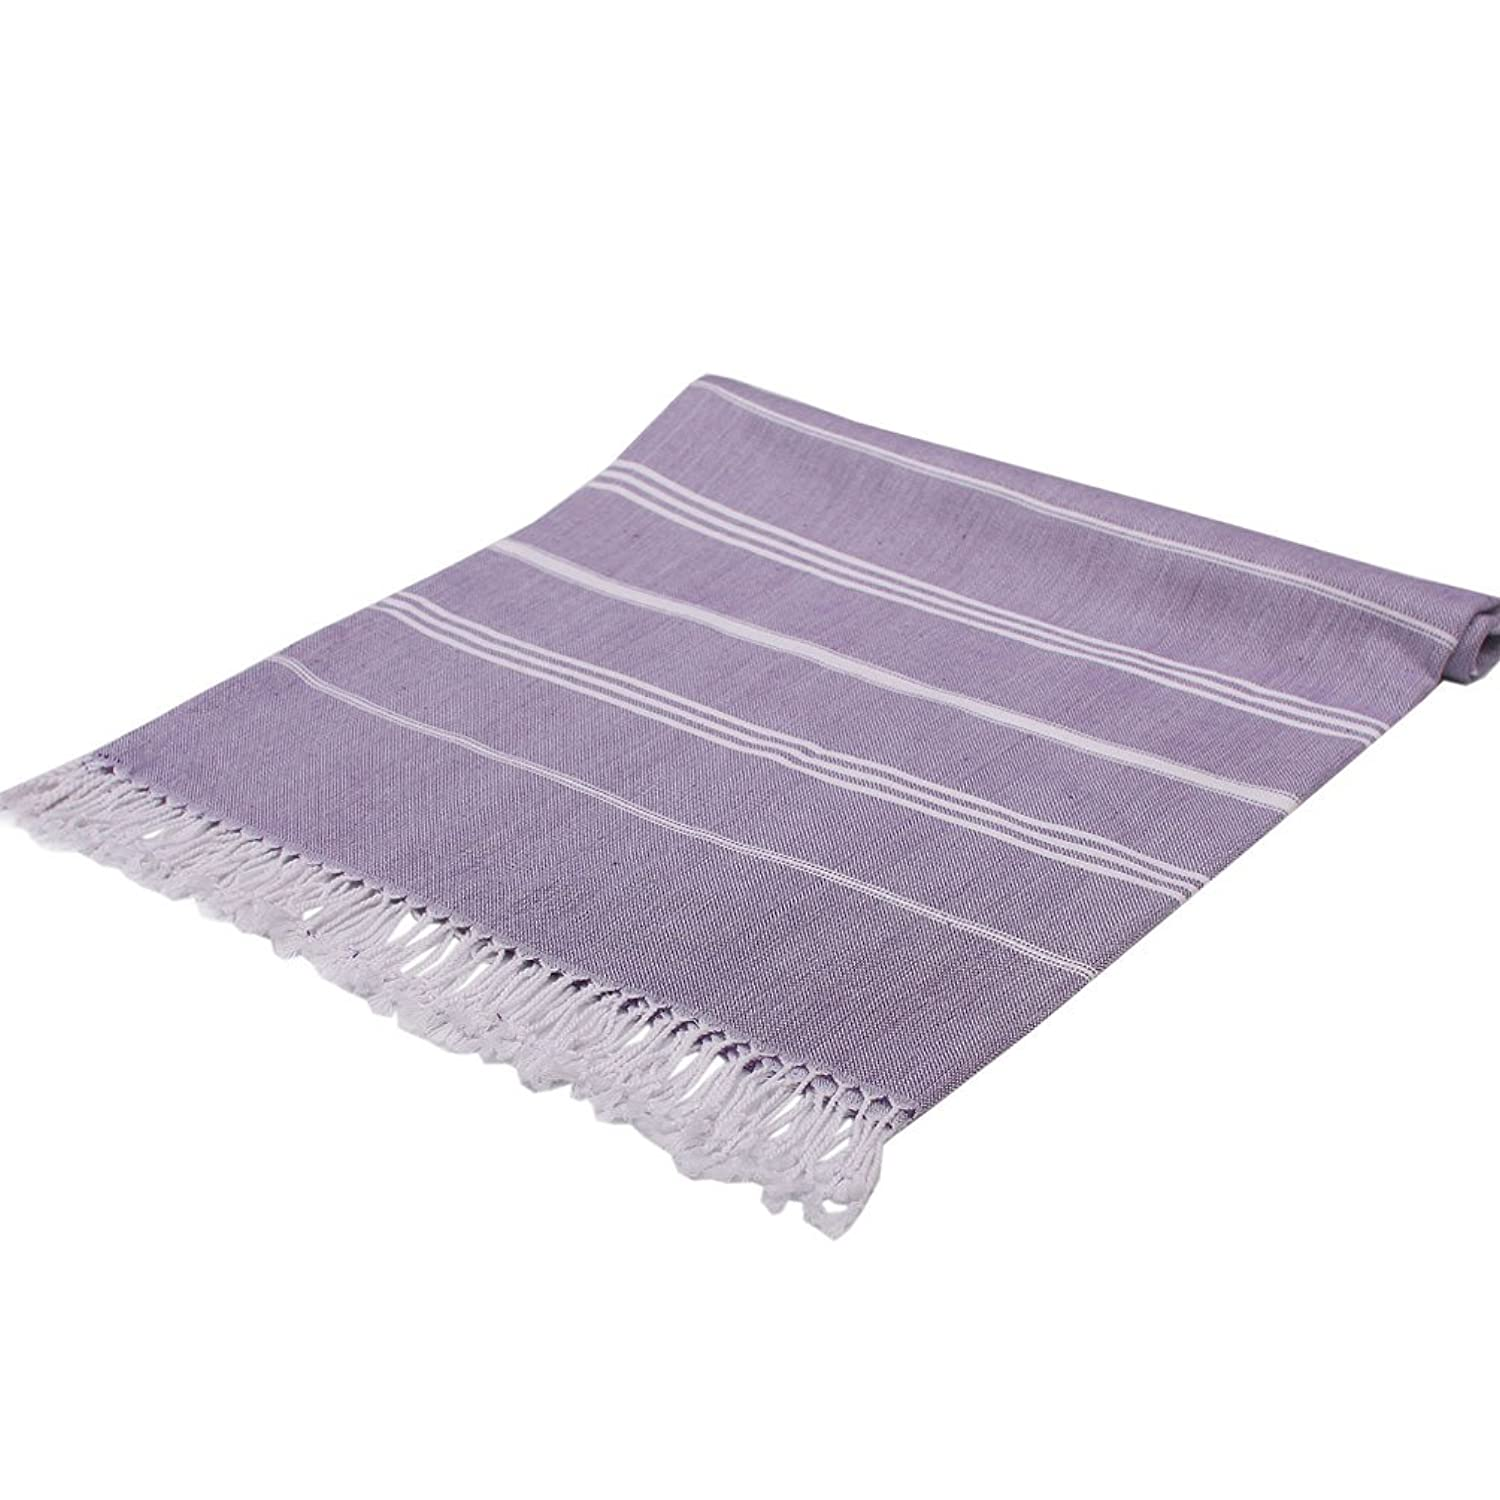 Soft Long Beach Towel Blanket - Valuable Price, 30-Day Refund Guaranteed